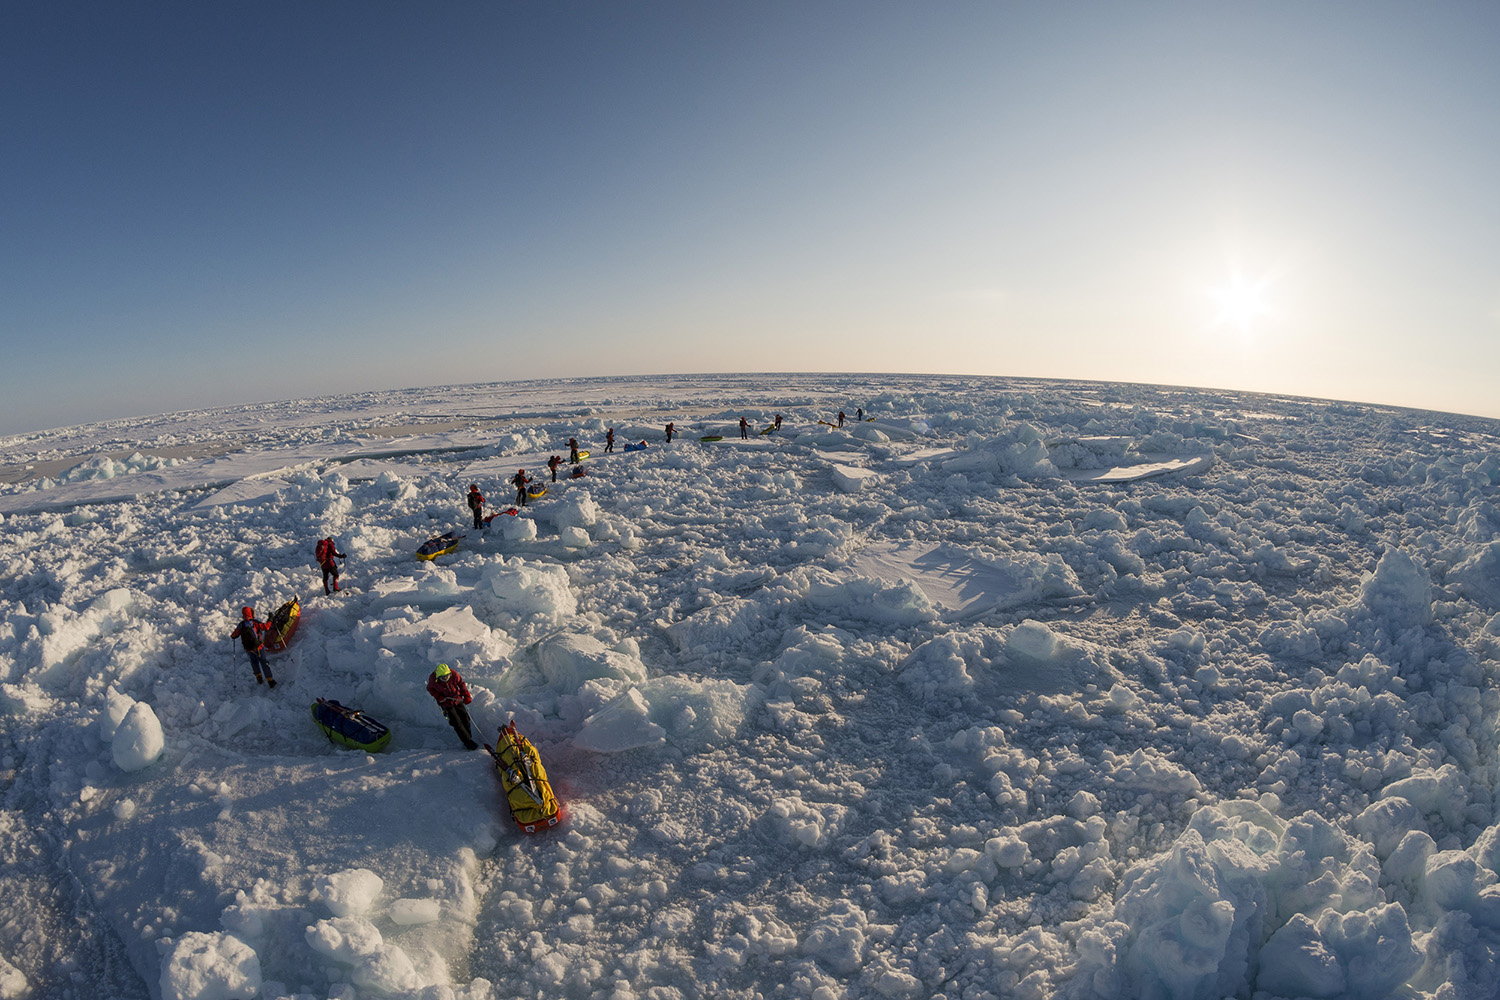 Greenpeace North Pole expedition. The team, most of them without any previous polar experience, skied to the North Pole and lowered a capsule 4.3 Km onto the sea bed, containing signatories to their campaign to protect the Arctic from industrial development.